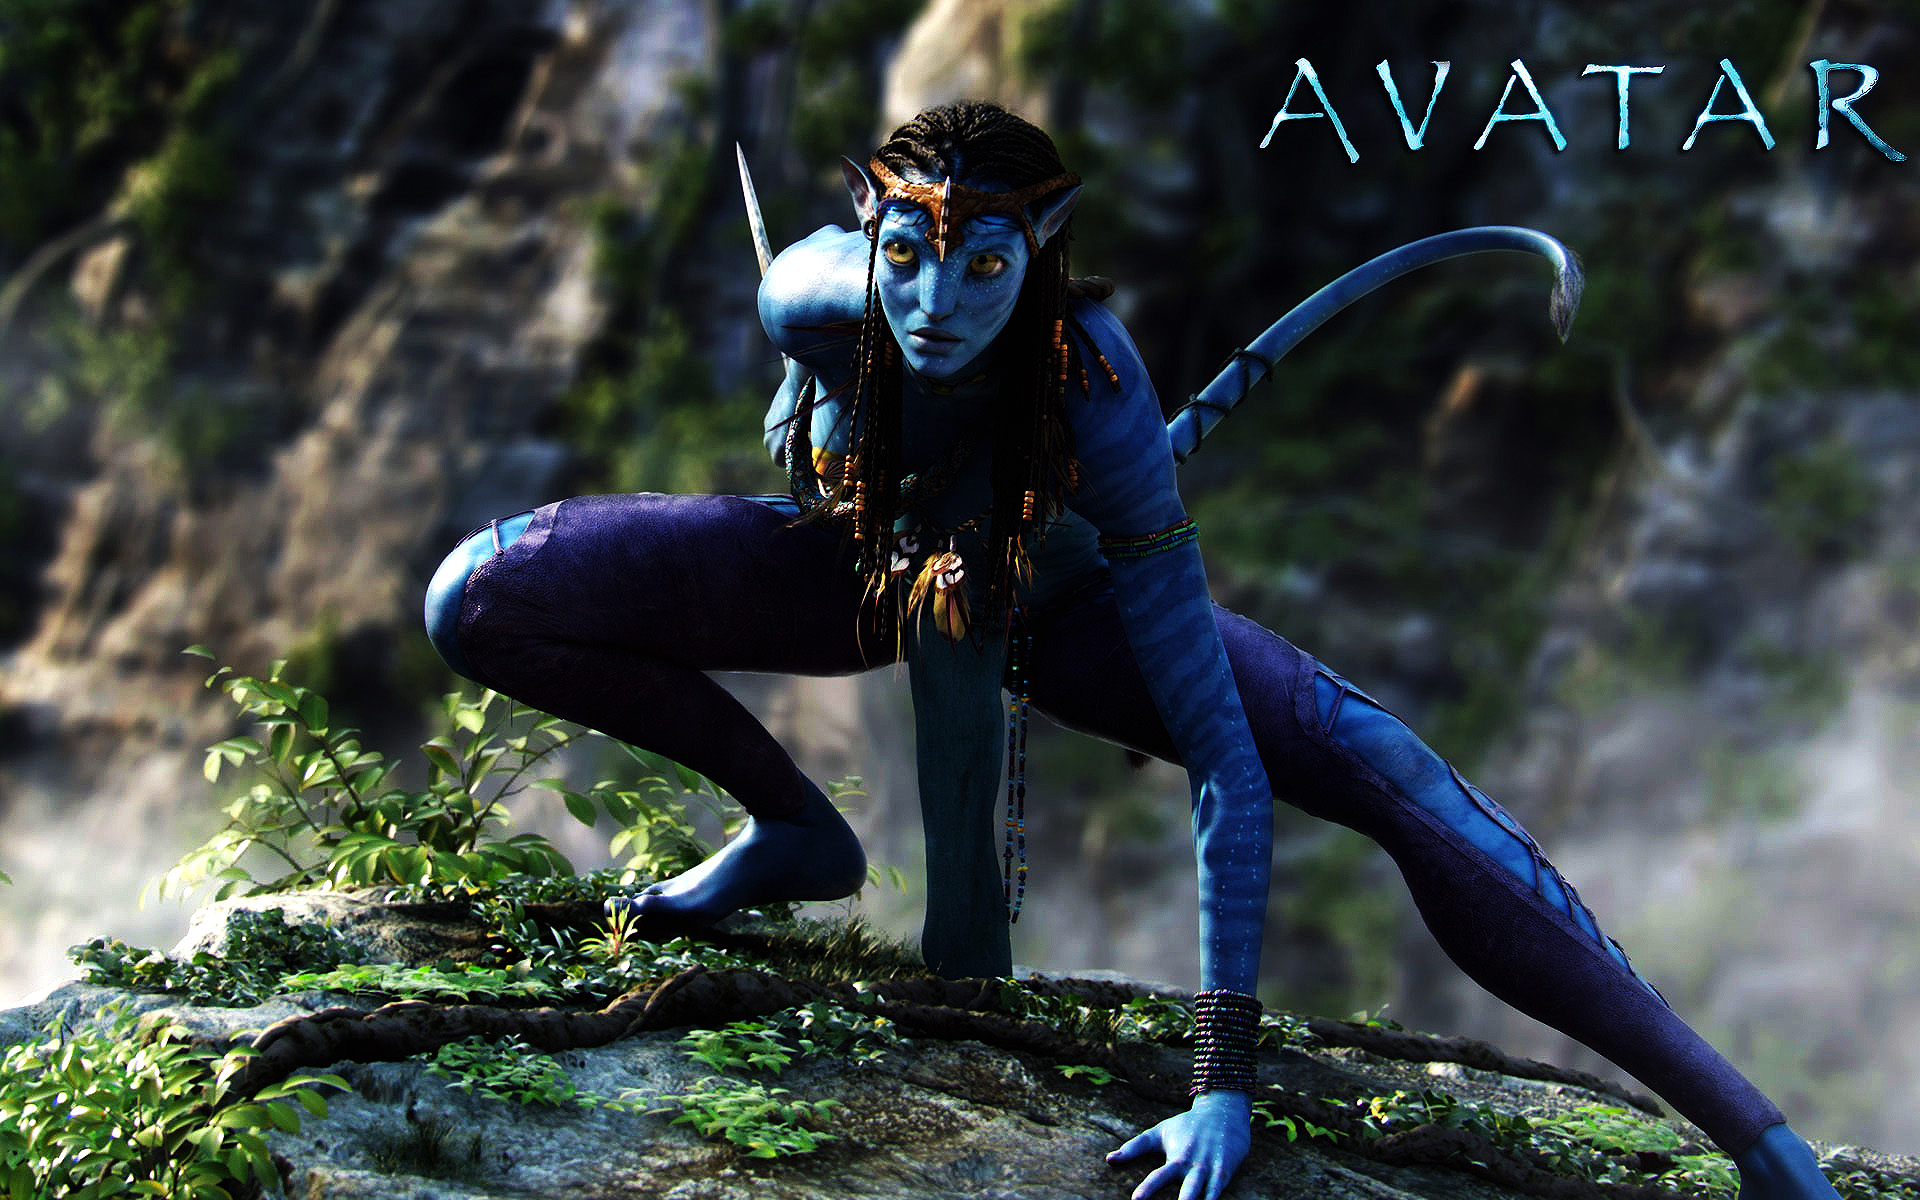 avatar-wallpaper-movie-alwinclores-20917